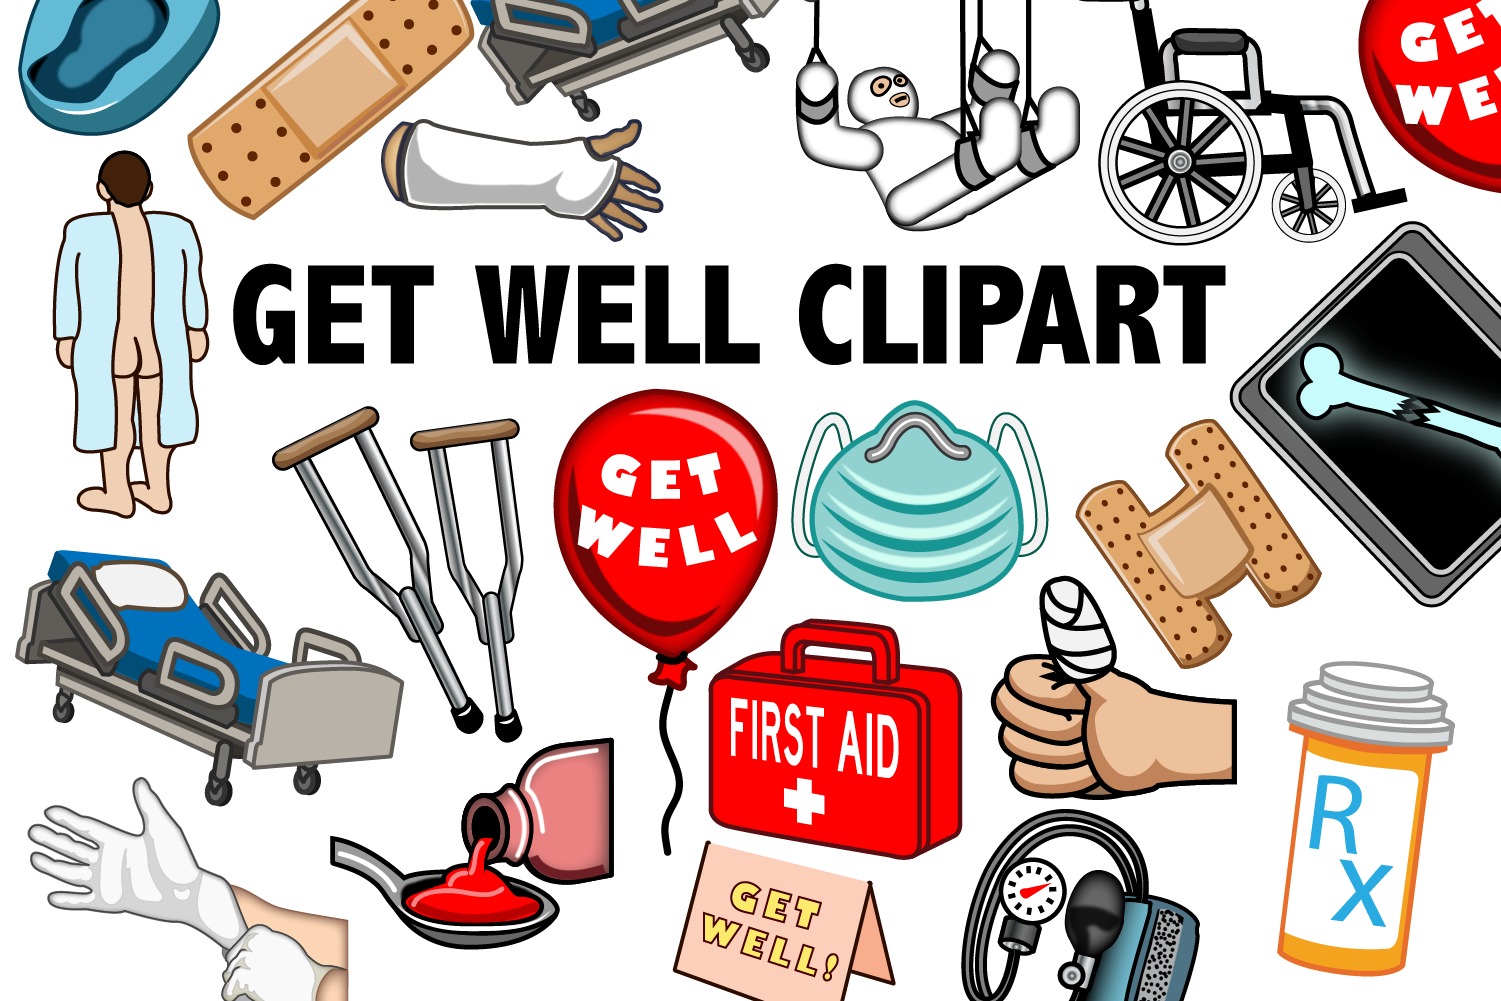 Get Well Clipart example image 1